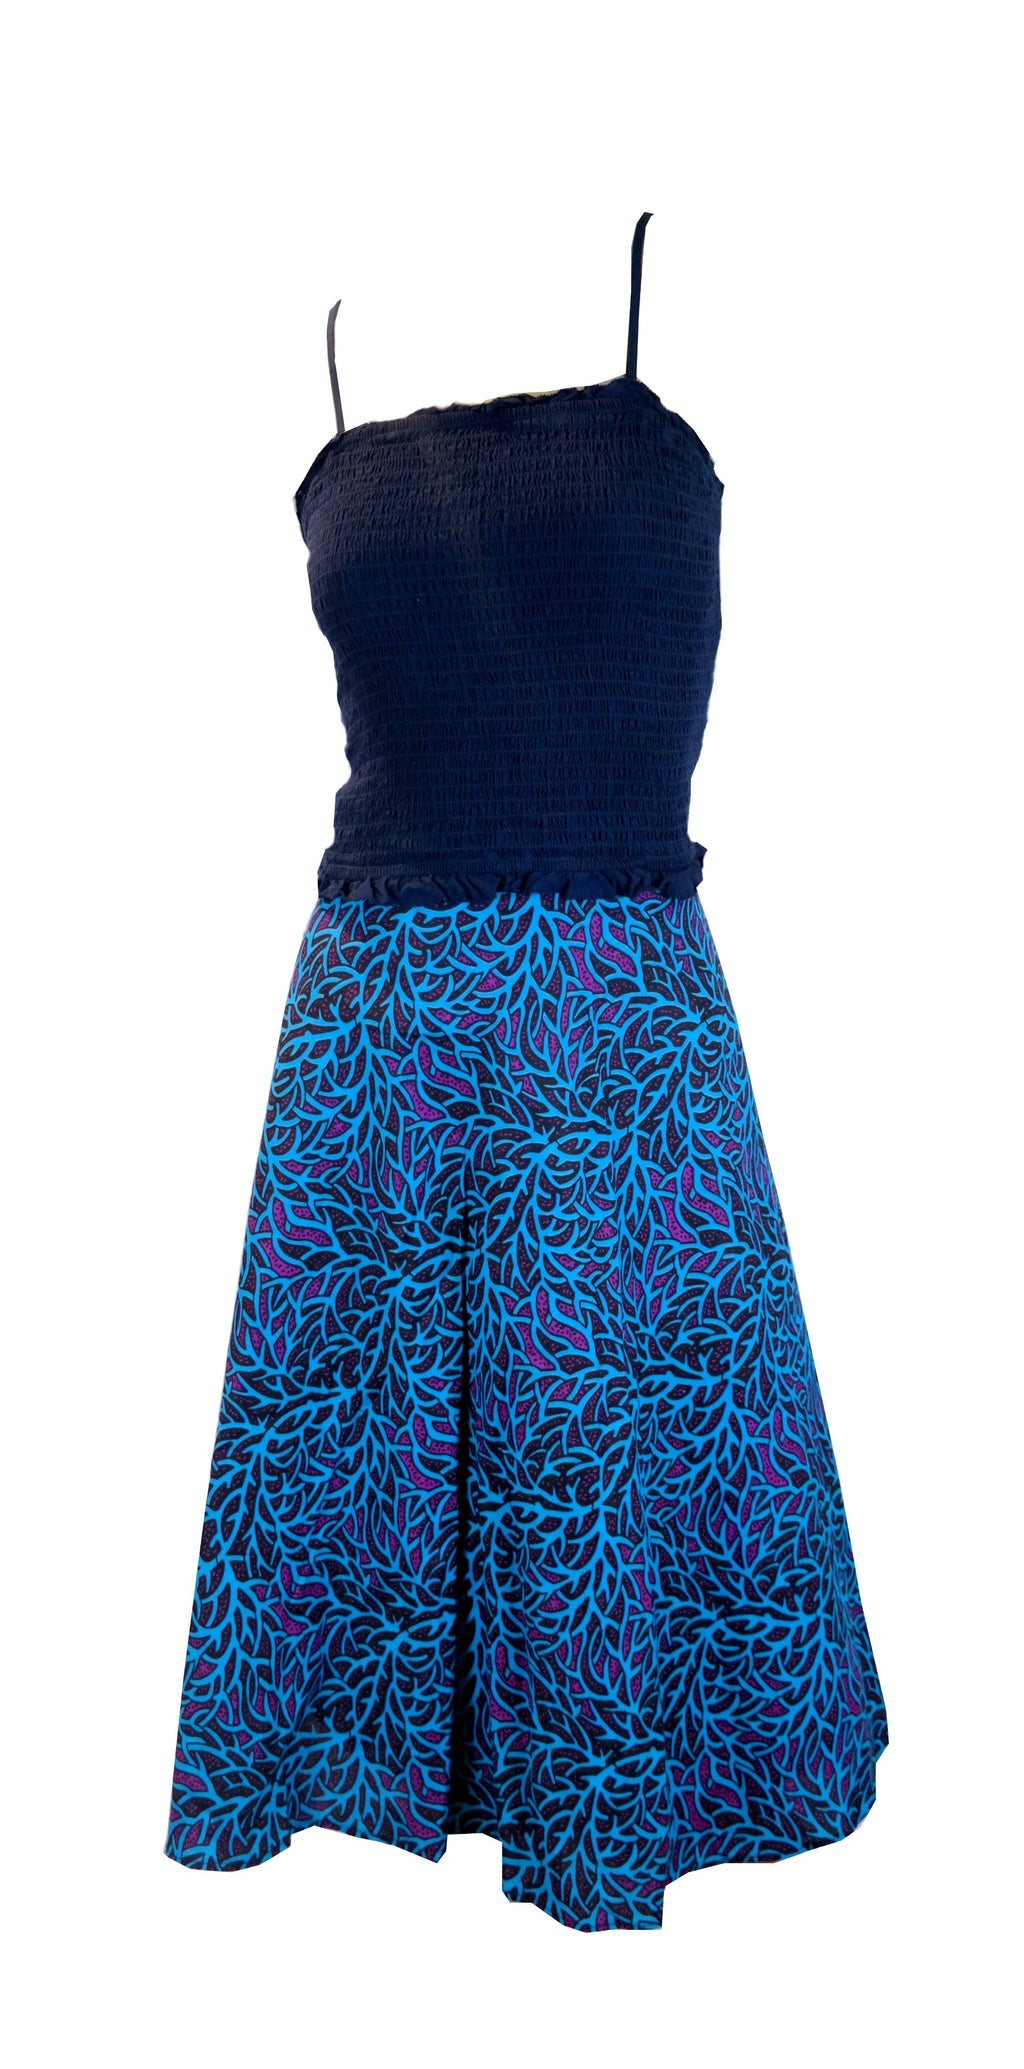 Wrapped in Print - African Print Wrapped Skirt - Size L/XL